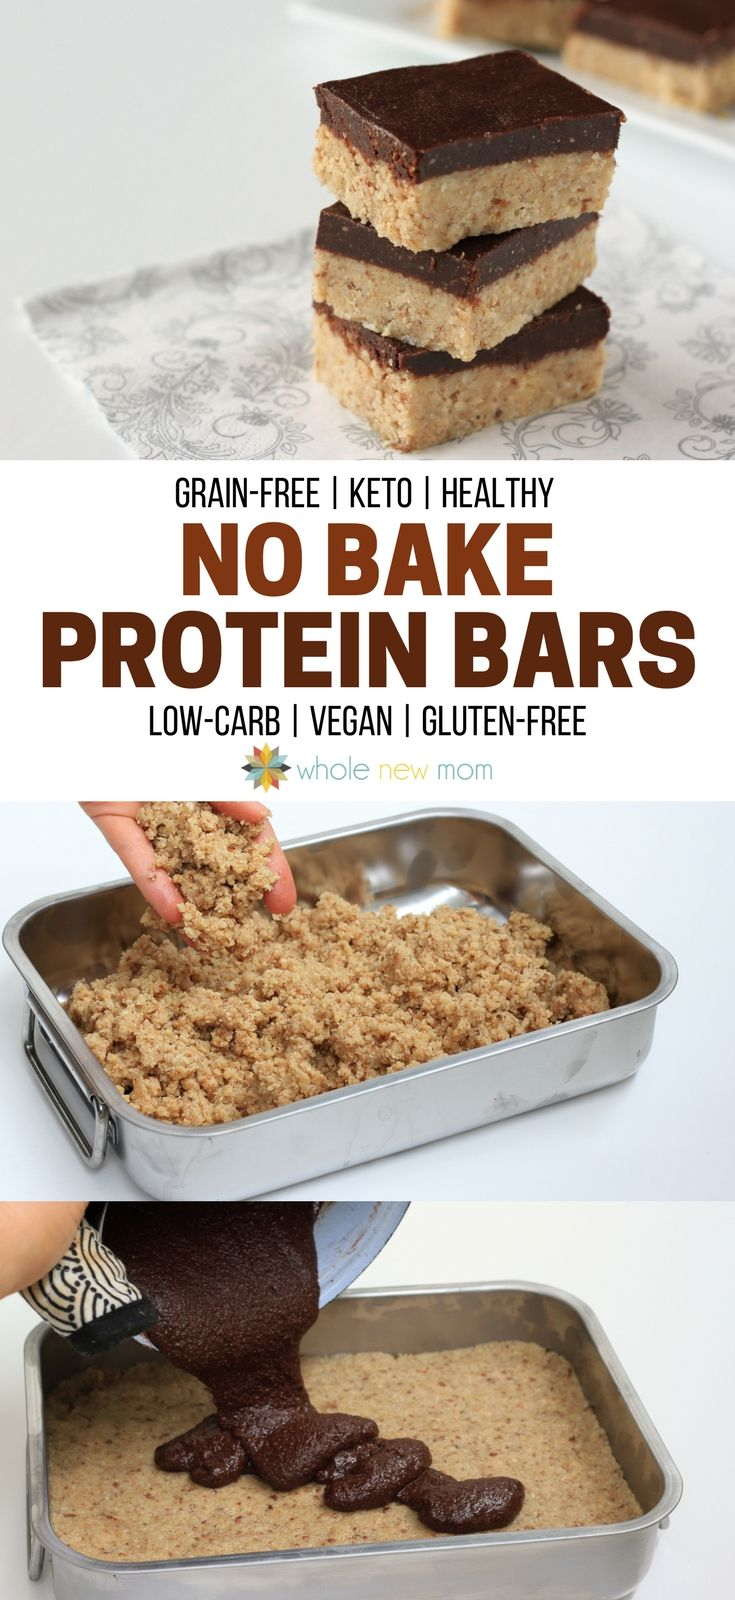 Ez No Bake Protein Bars Grain Free Low Carb Vegan Whole New Mom Recipe No Bake Protein Bars Protein Bar Recipes Healthy Protein Snacks